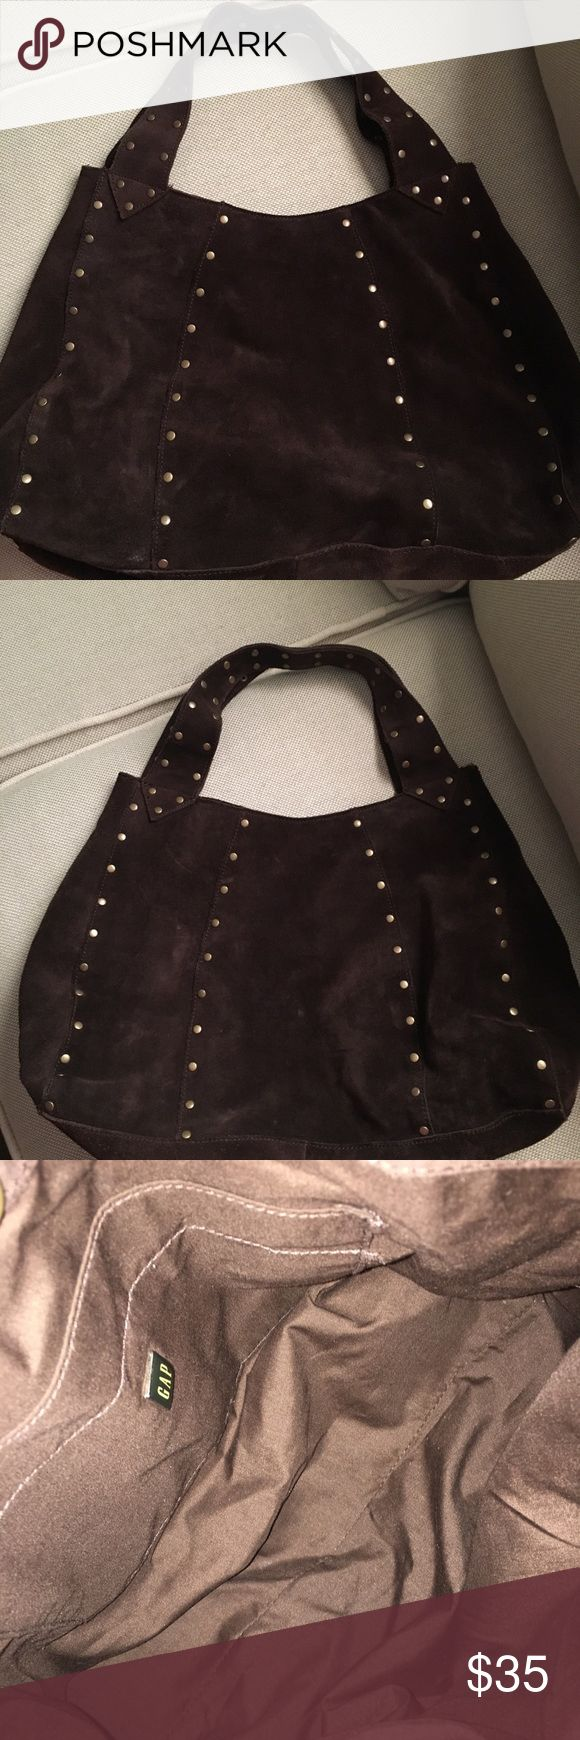 Suede handbag This studded handbag is in great condition. It is like new inside and out. GAP Bags Shoulder Bags